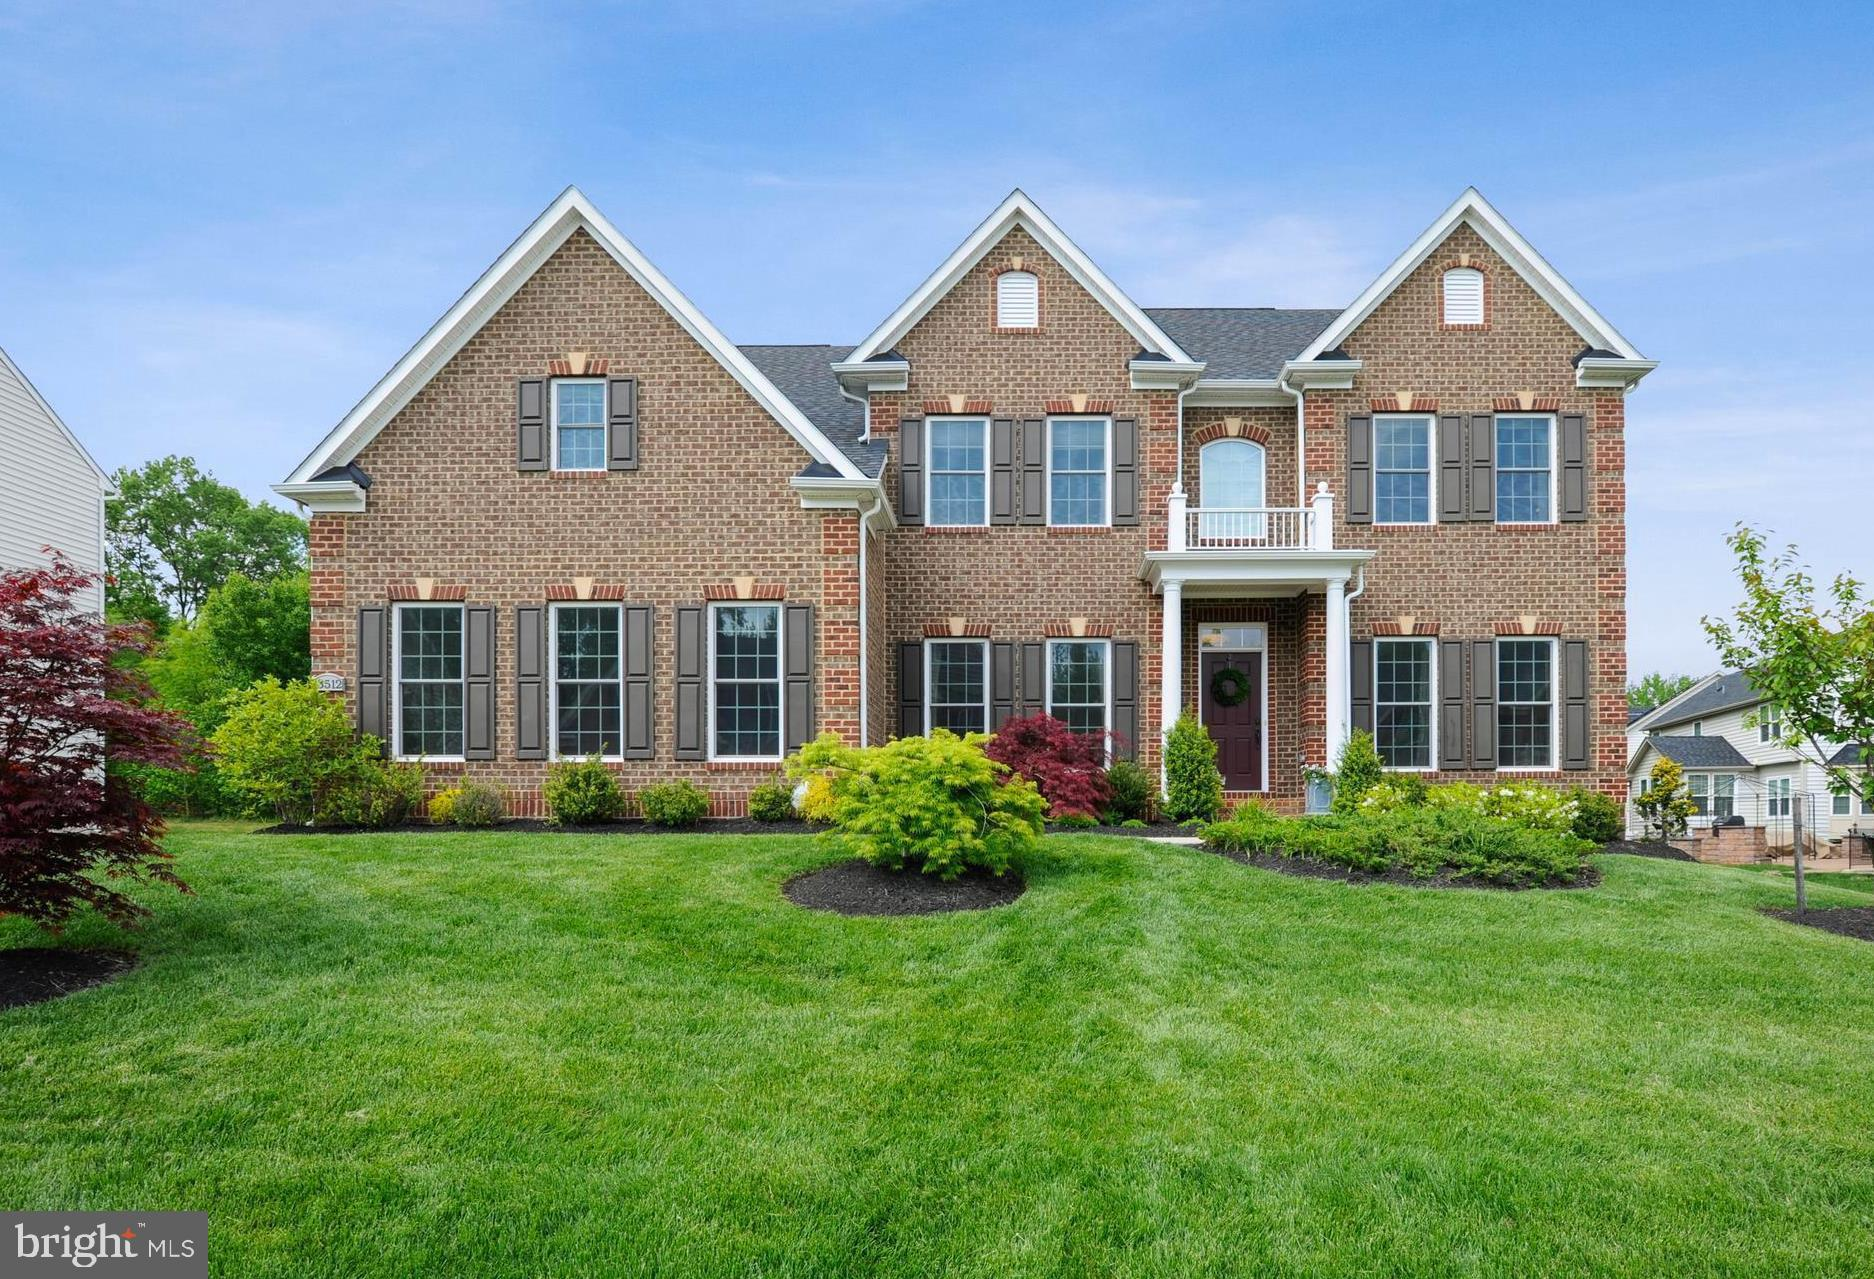 13512 MARY BOWIE PARKWAY, UPPER MARLBORO, MD 20774